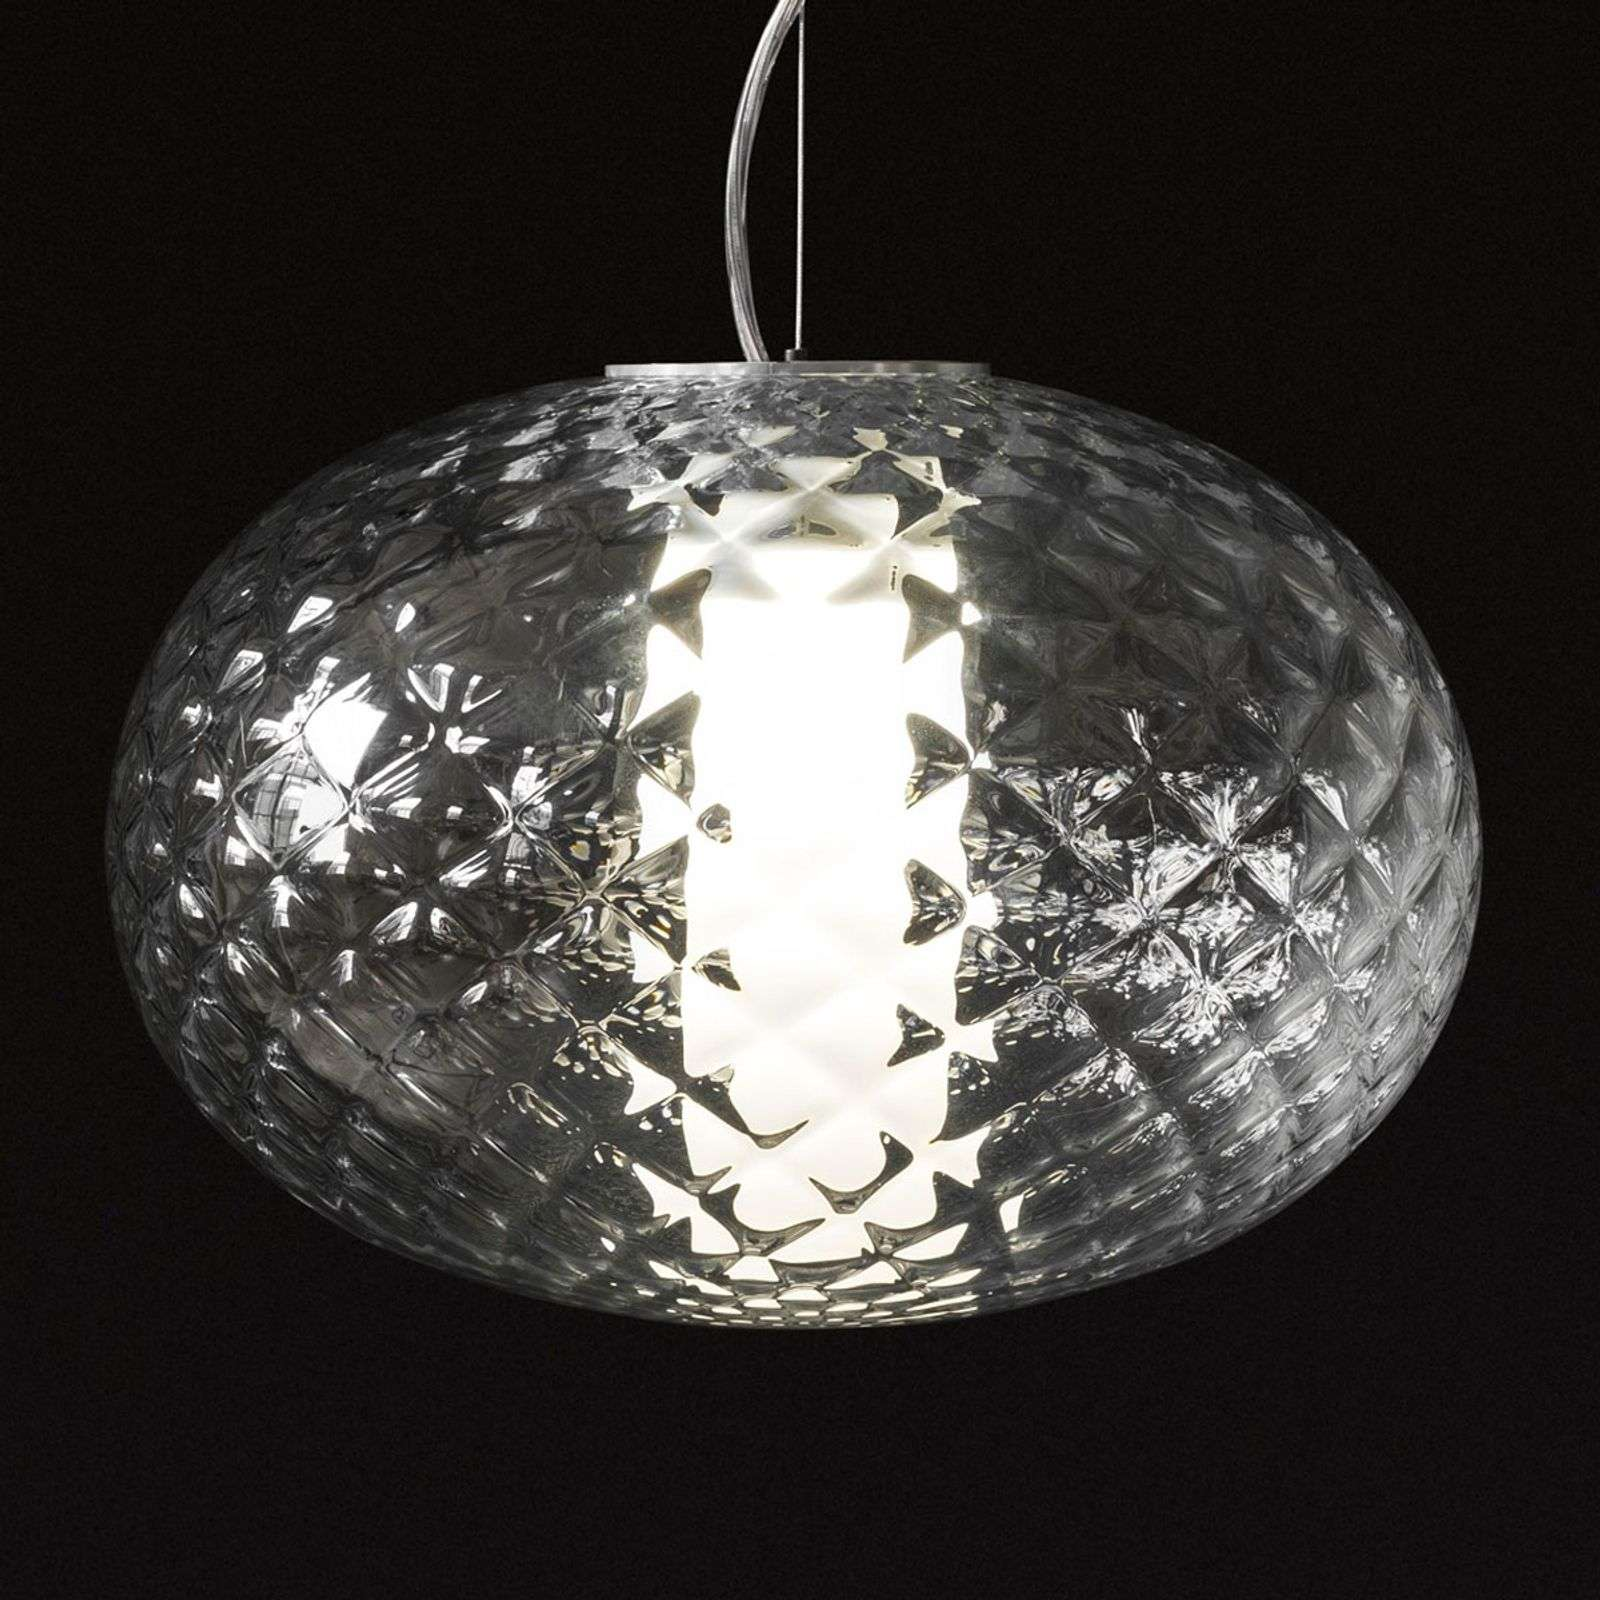 Oluce Recuerdo - suspension en verre avec LED